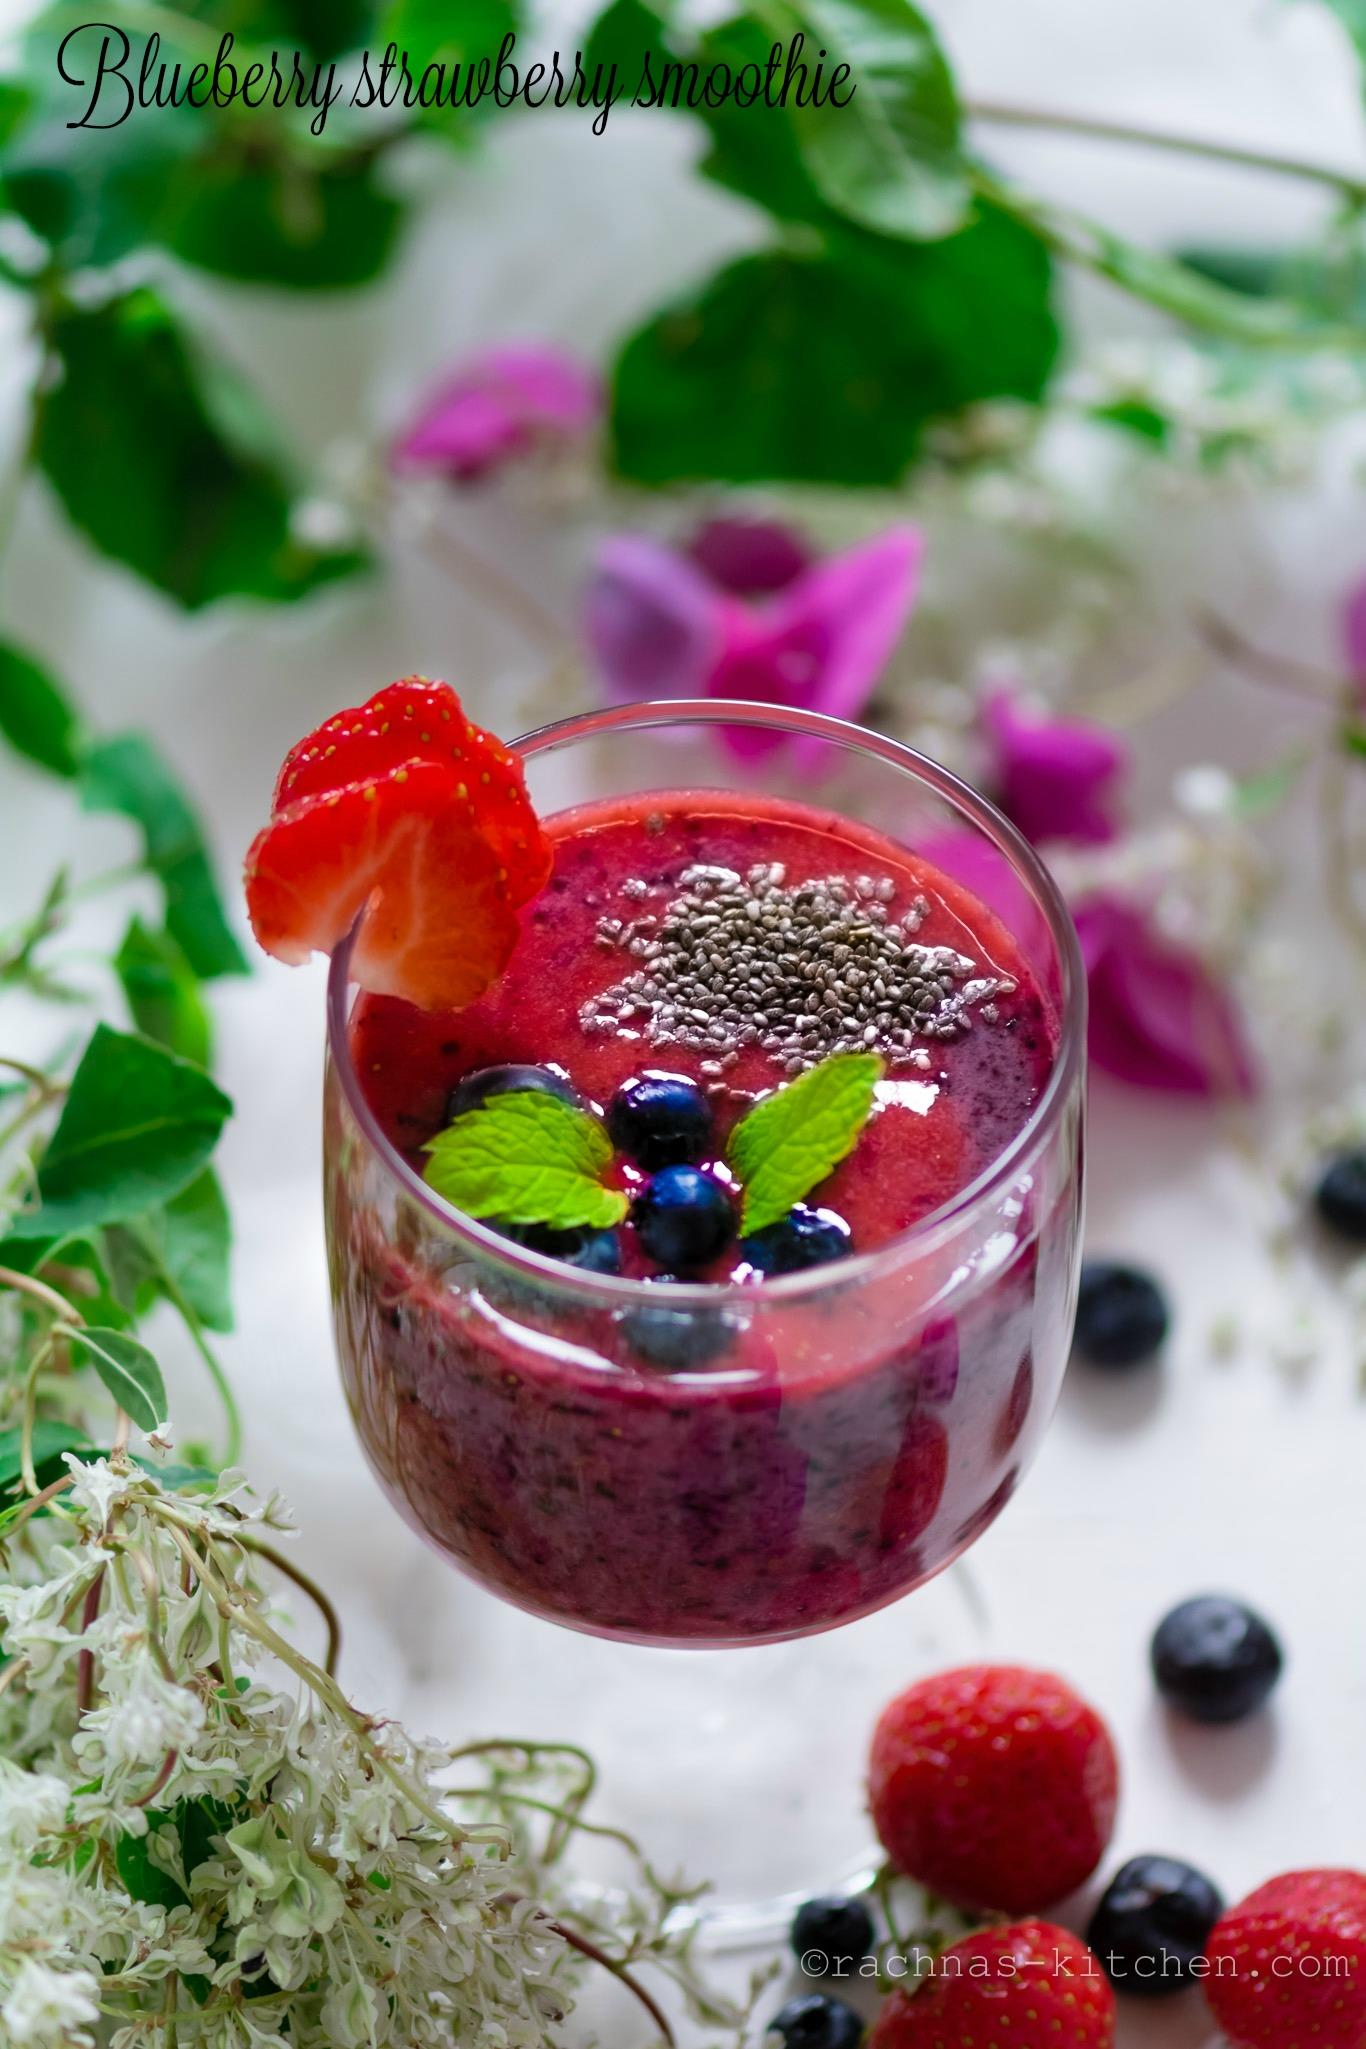 Strawberry blueberry smoothie recipe